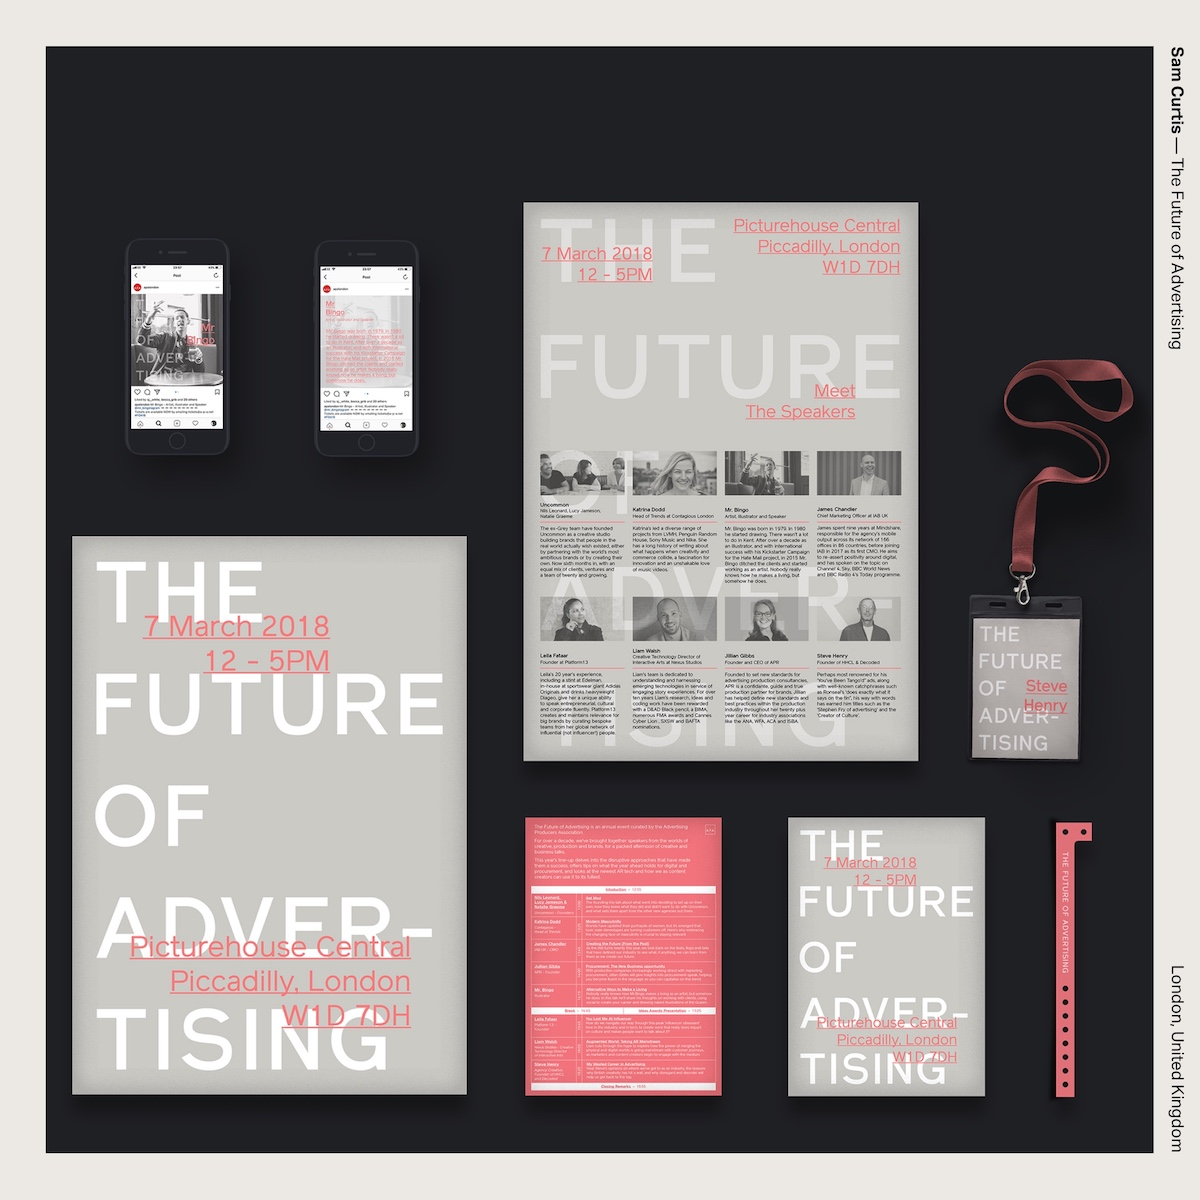 Sam Curtis — The Future of Advertising